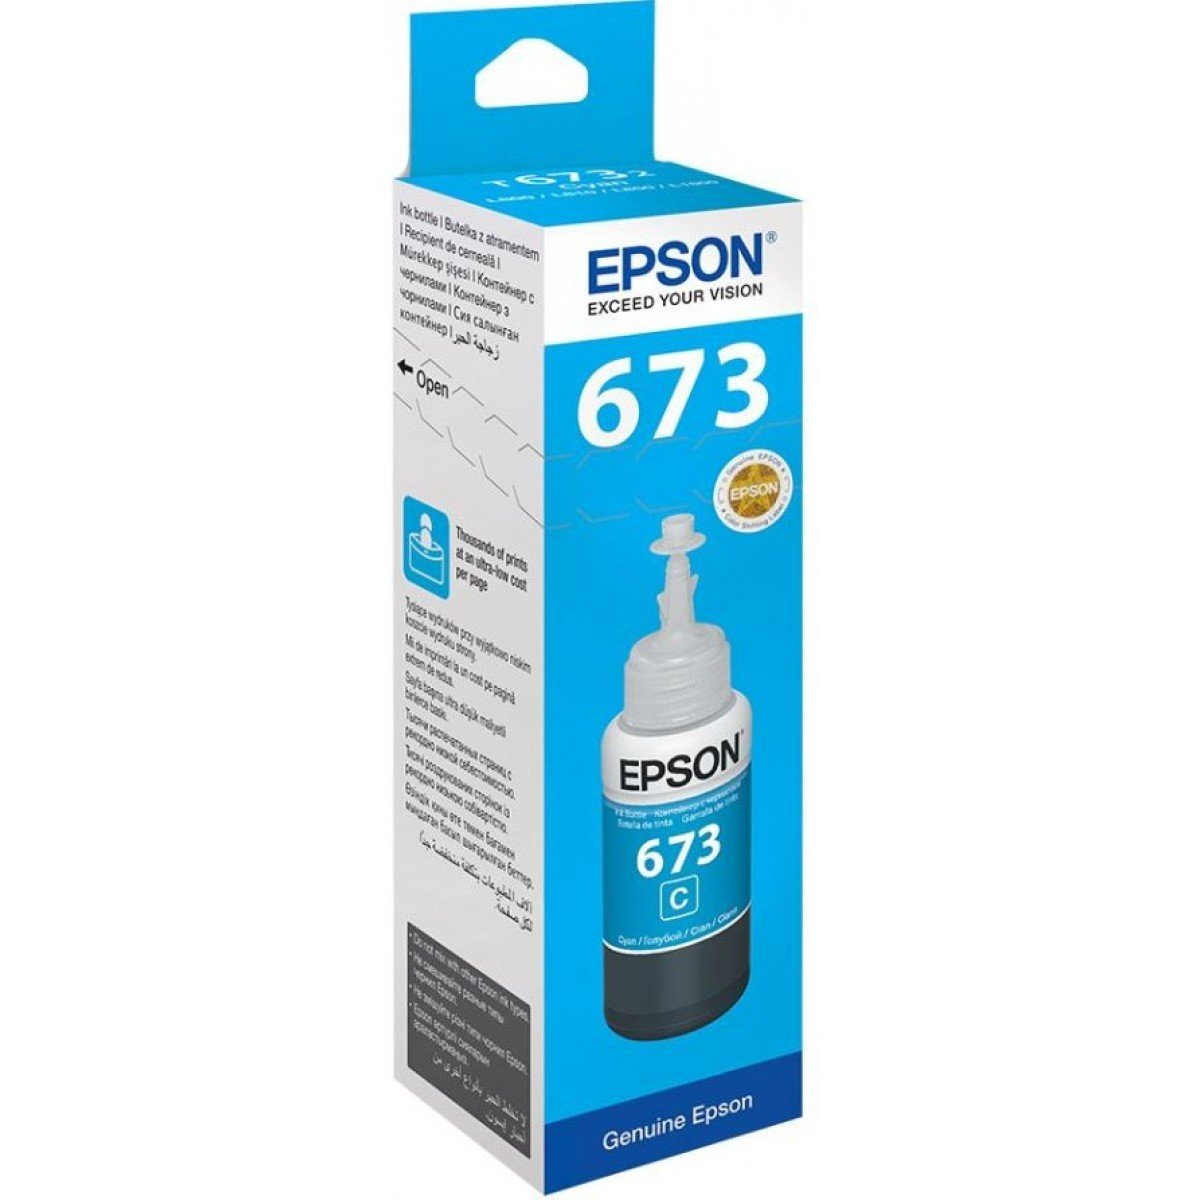 Epson ink Bottle, 673, Cyan, for l800, l805, l810, l850, l1800